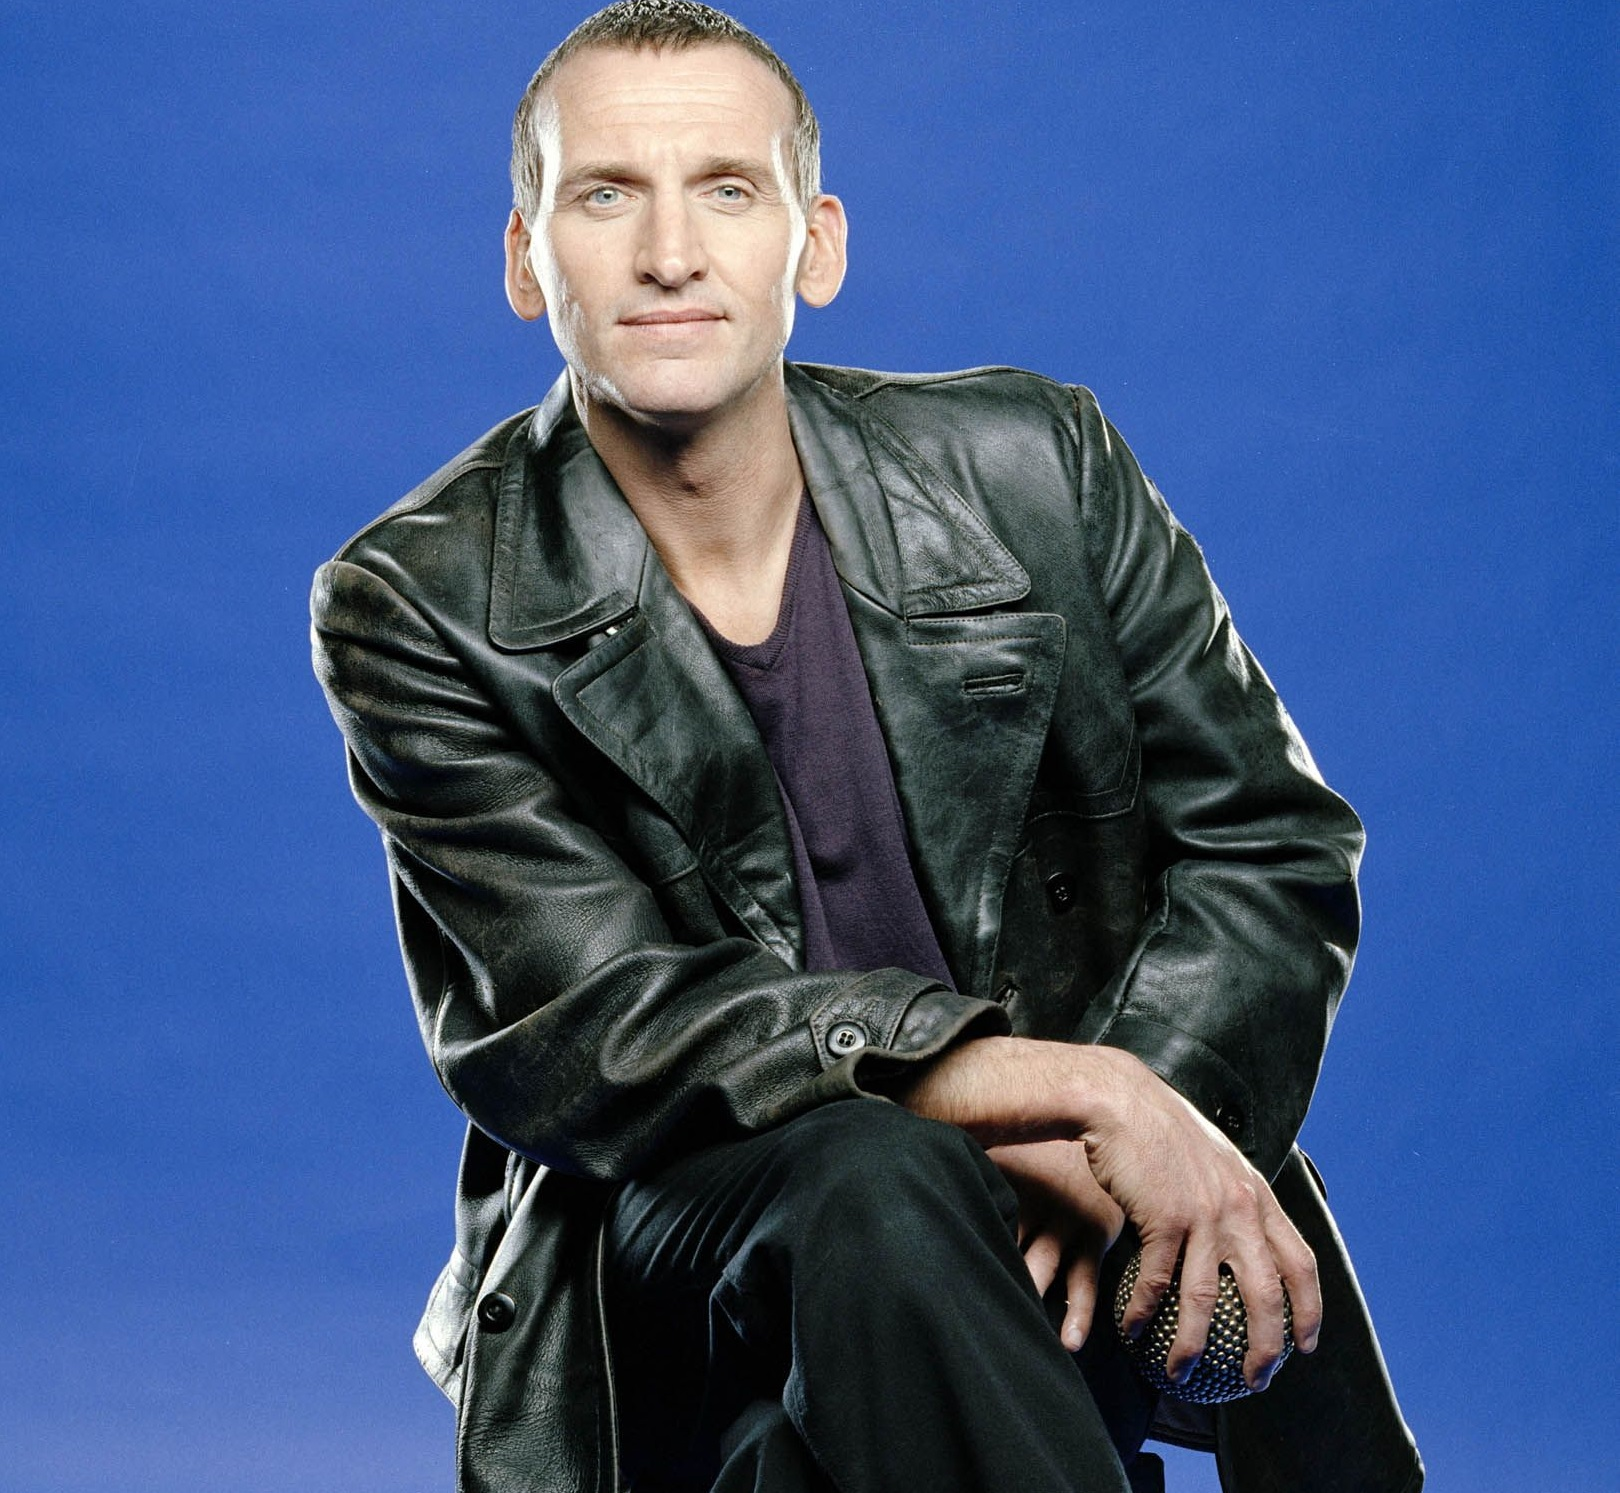 Exclusive Interview: Christopher Eccleston, the Ninth Doctor Himself